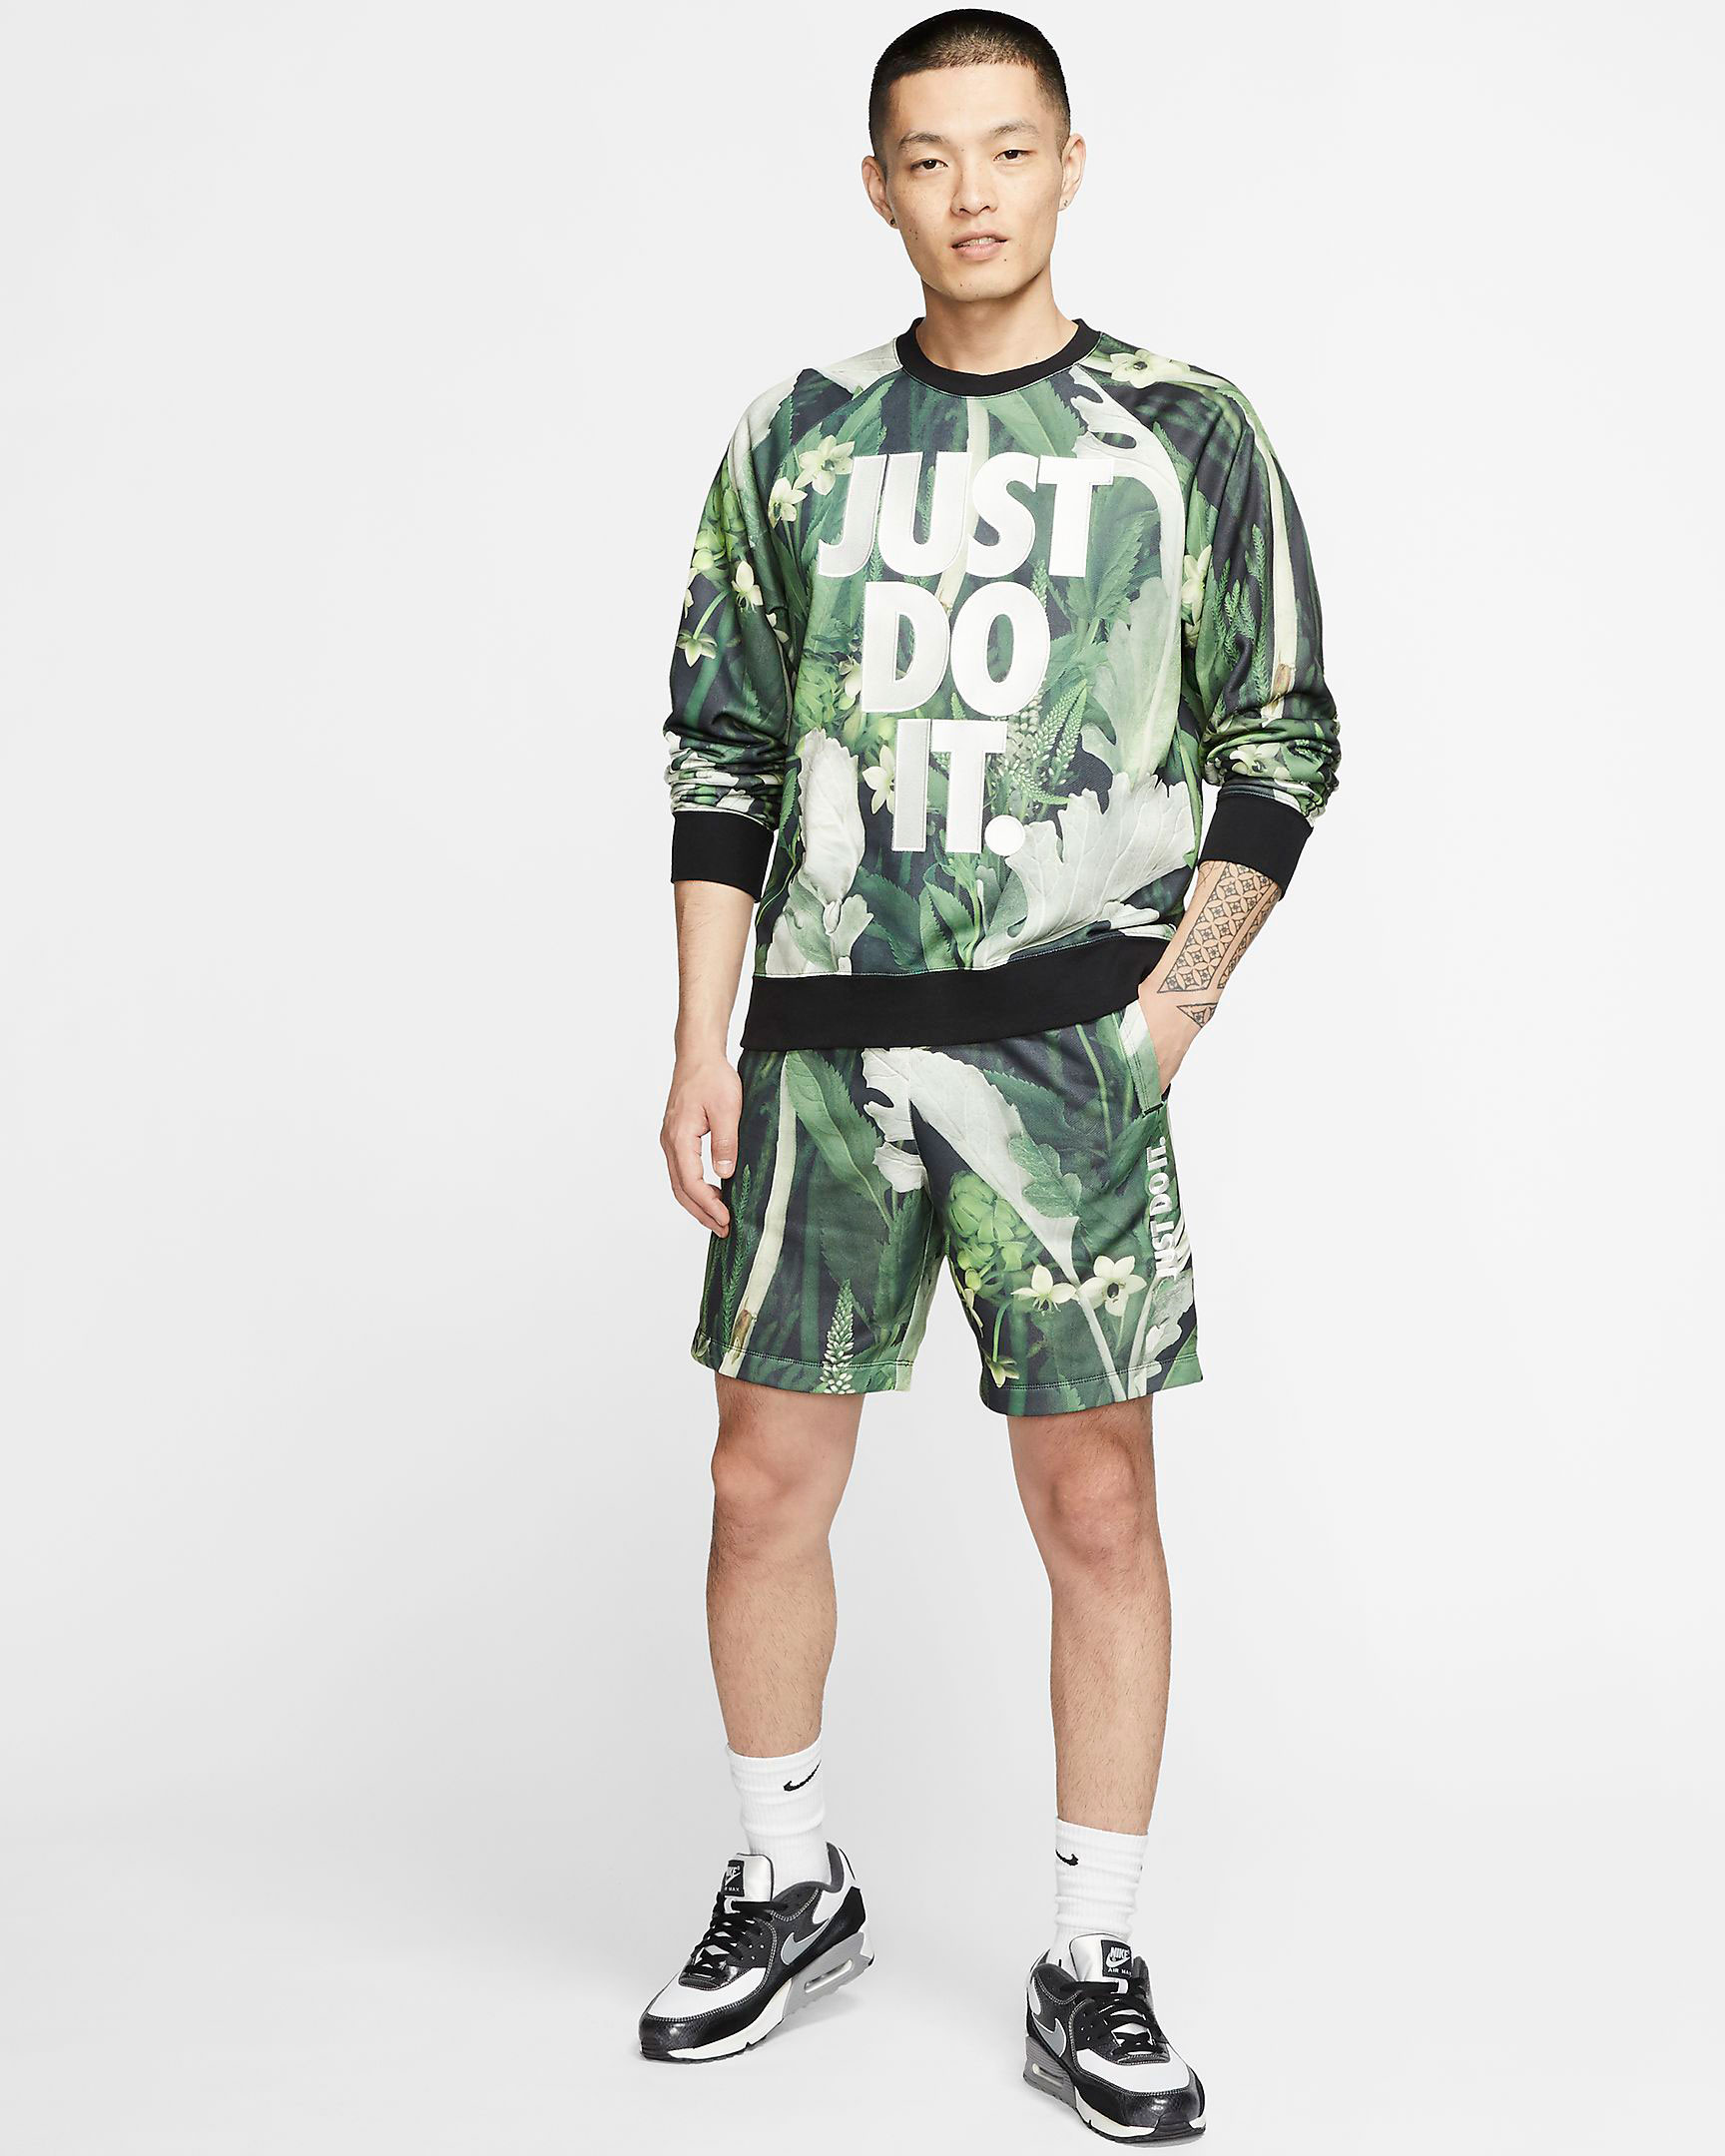 nike-just-do-it-floral-green-outfit